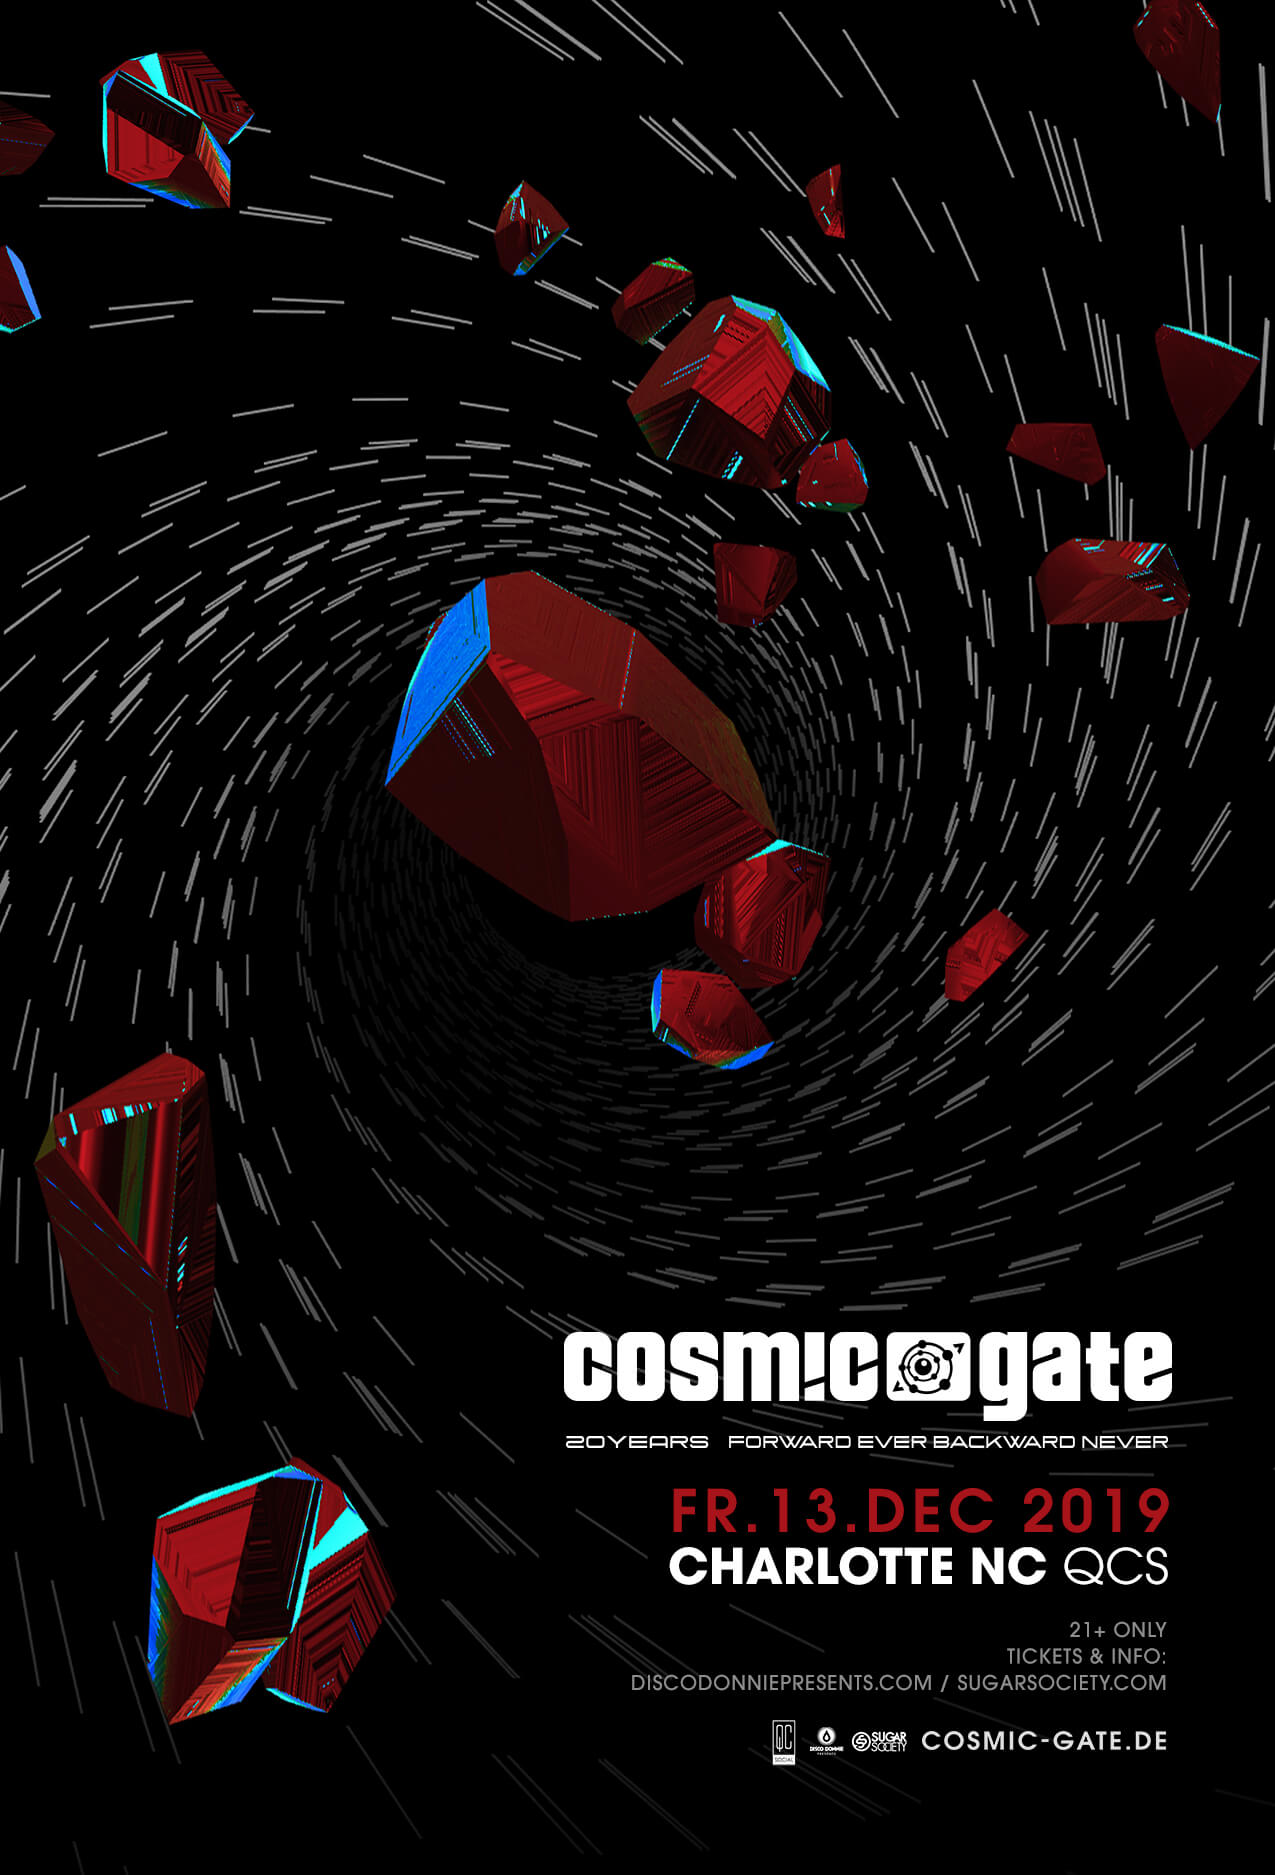 Cosmic Gate in Charlotte